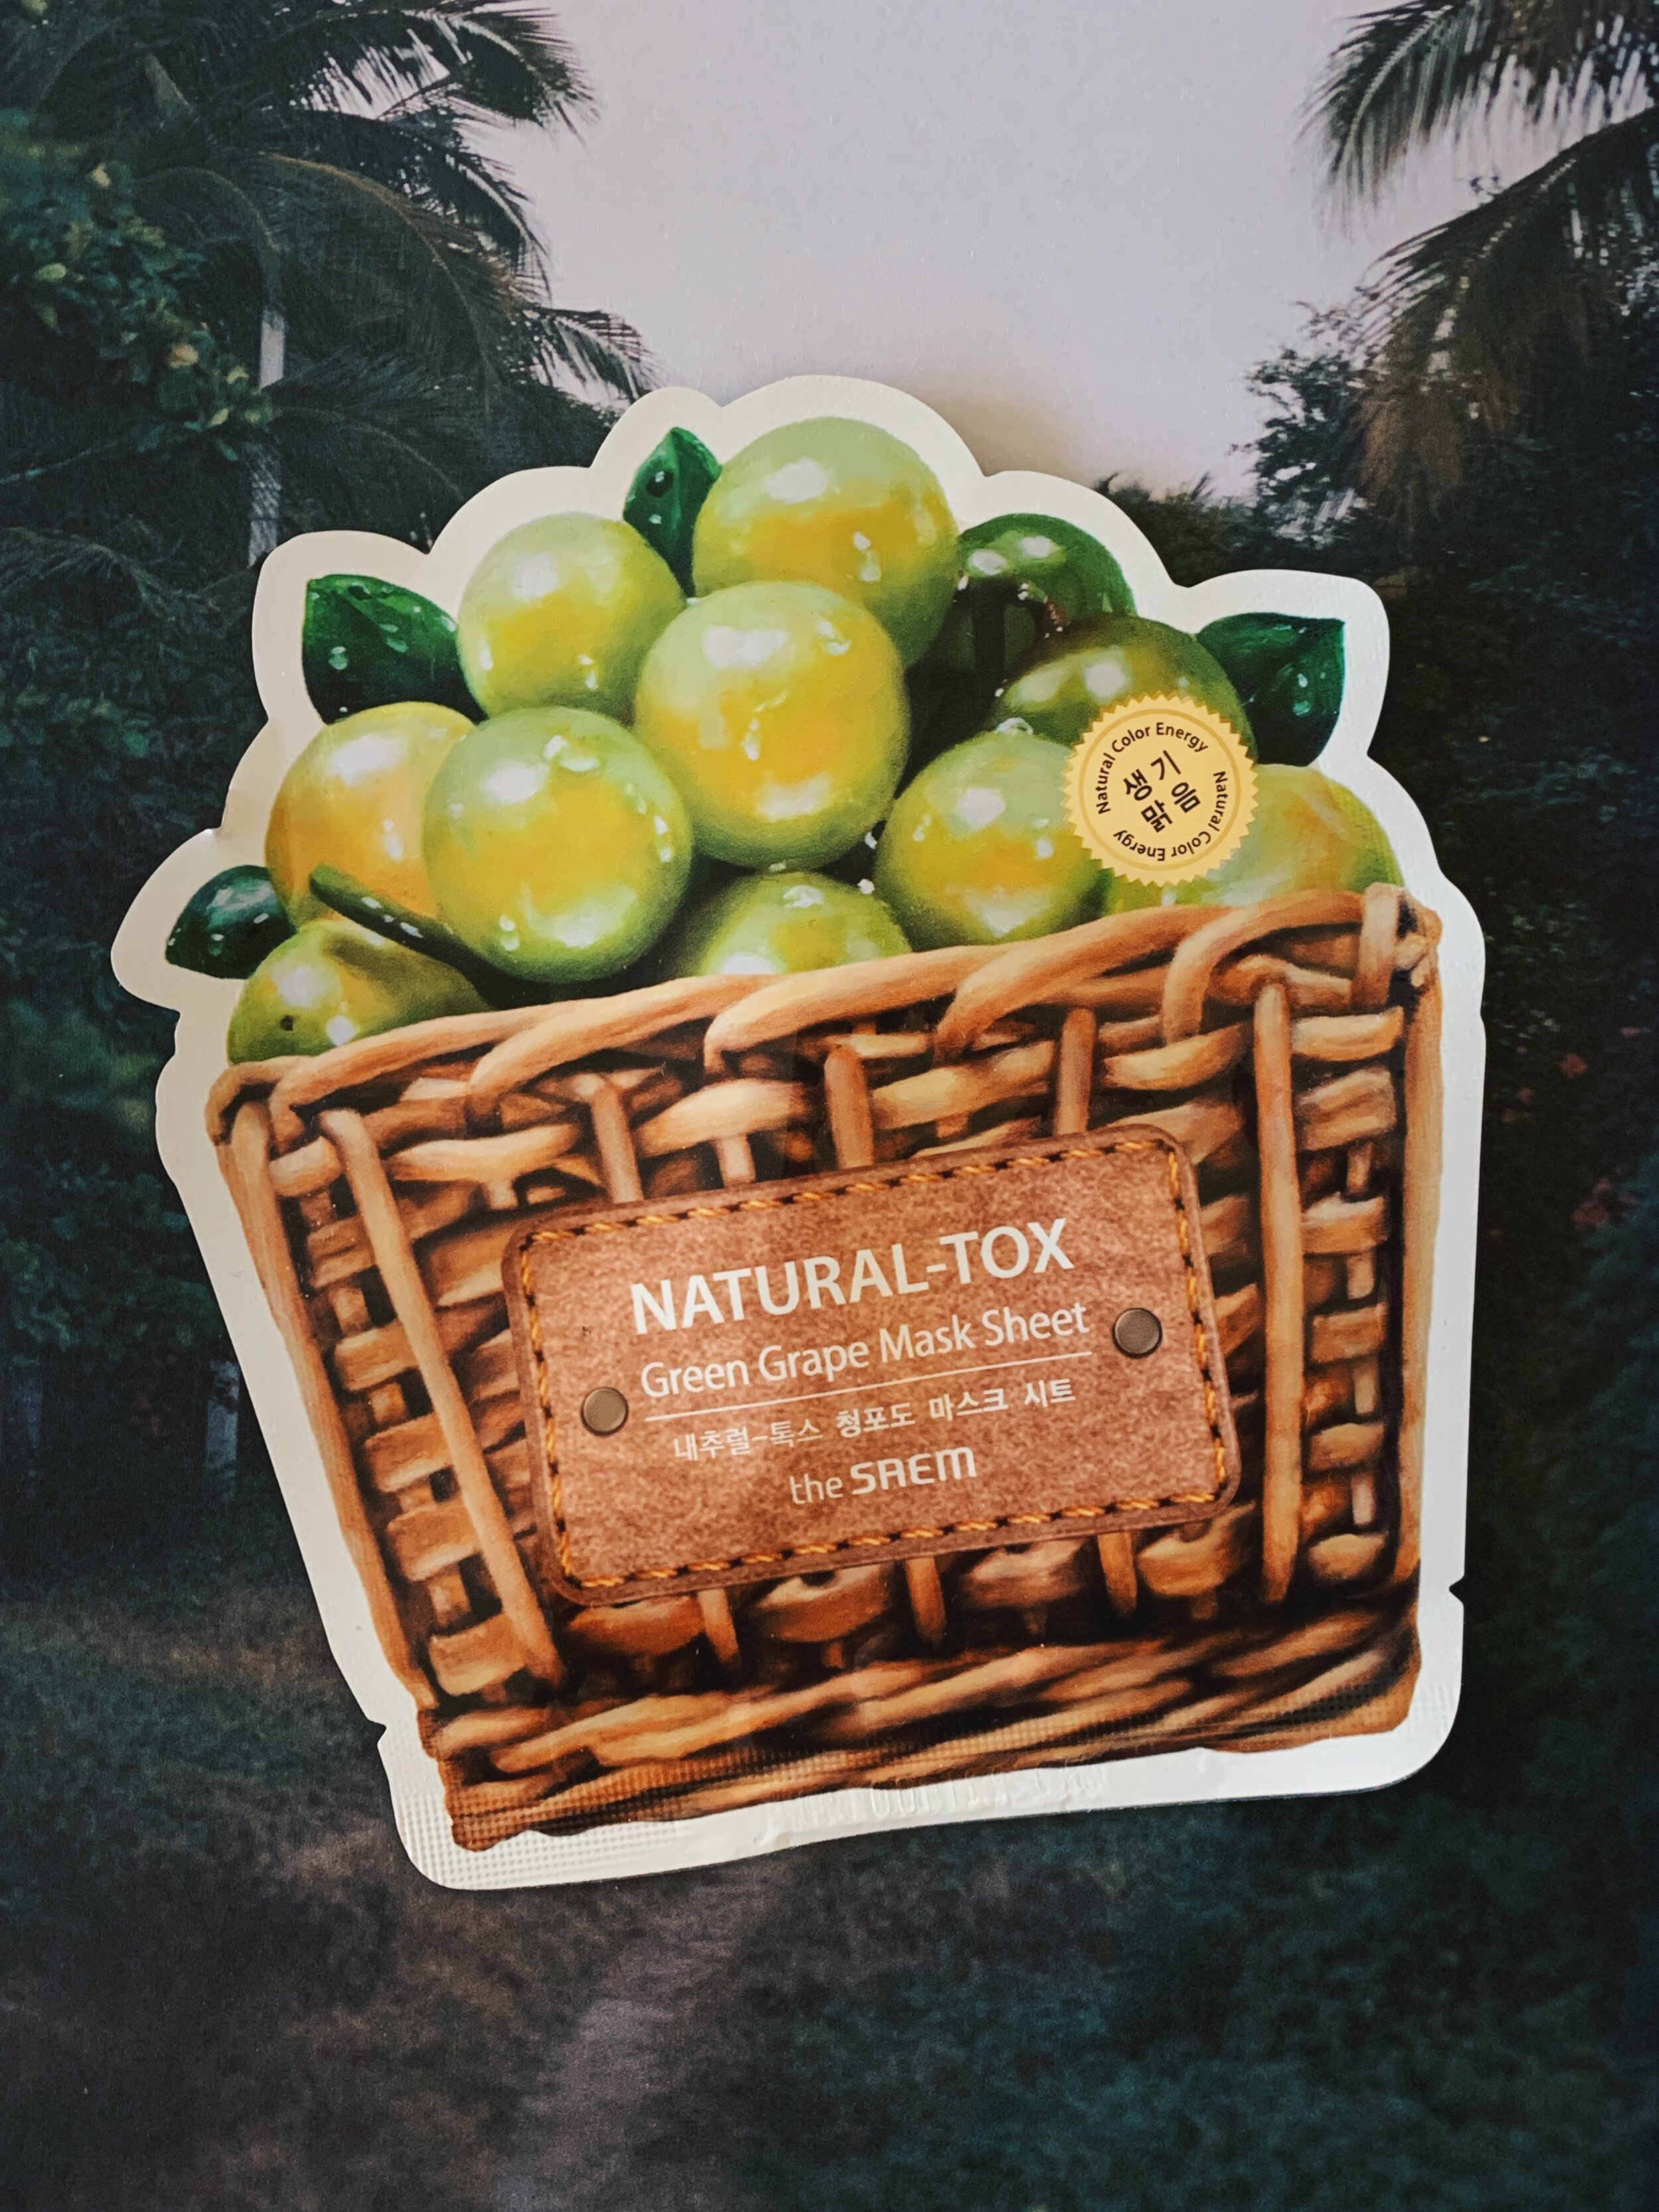 Natural-Tox Green Grape Mask To Dew List